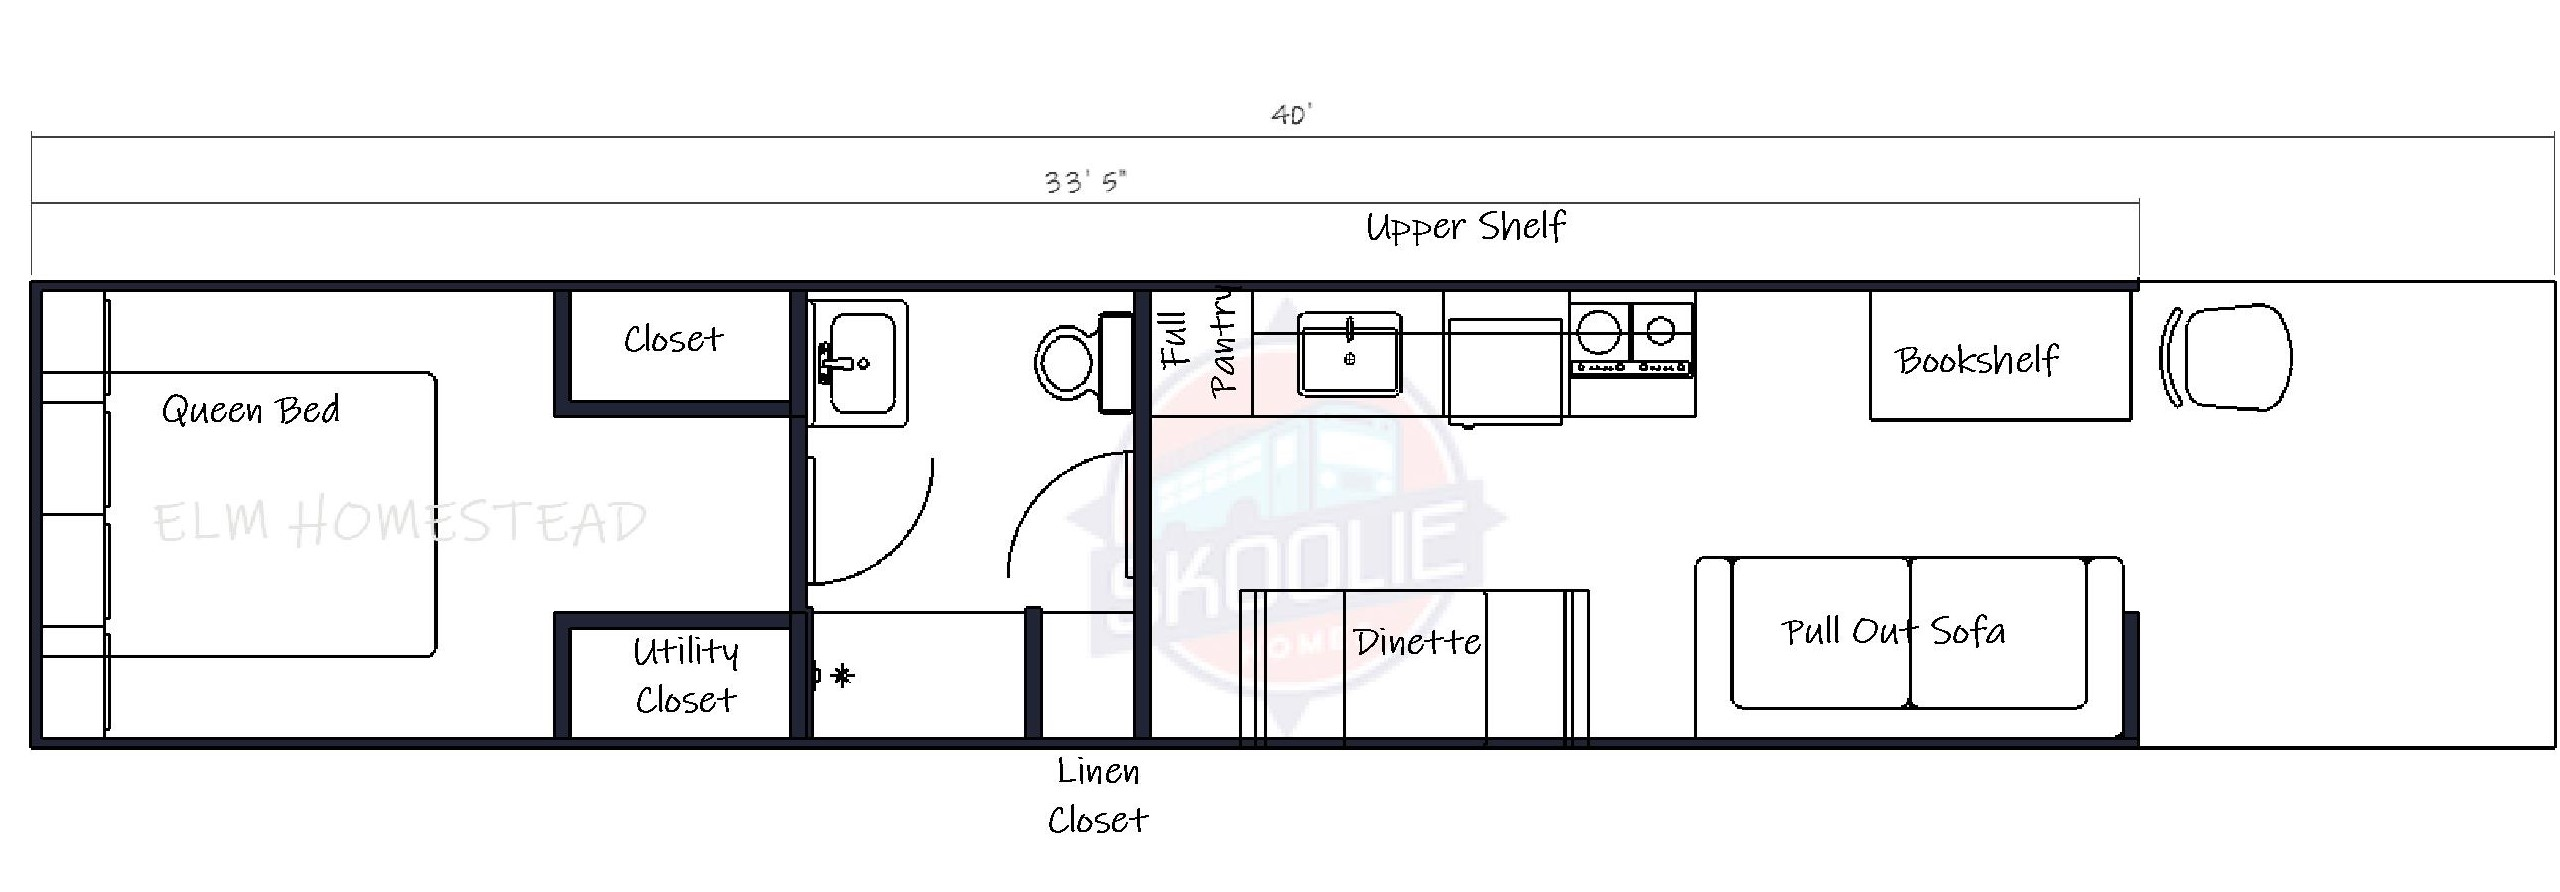 40 foot bus conversion floor plan